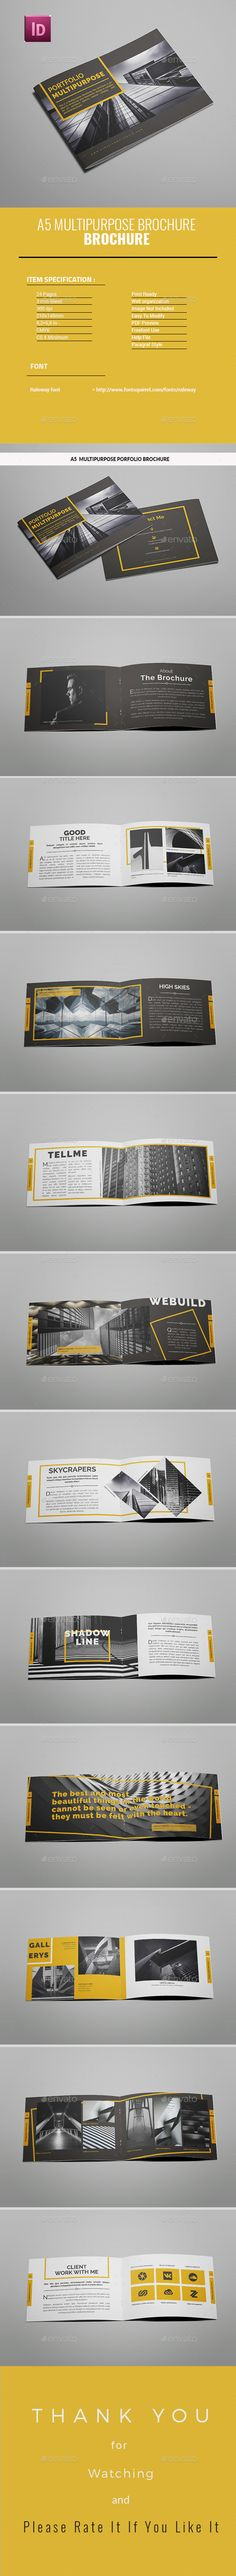 A5 Multipurpose Portfolio Brochure